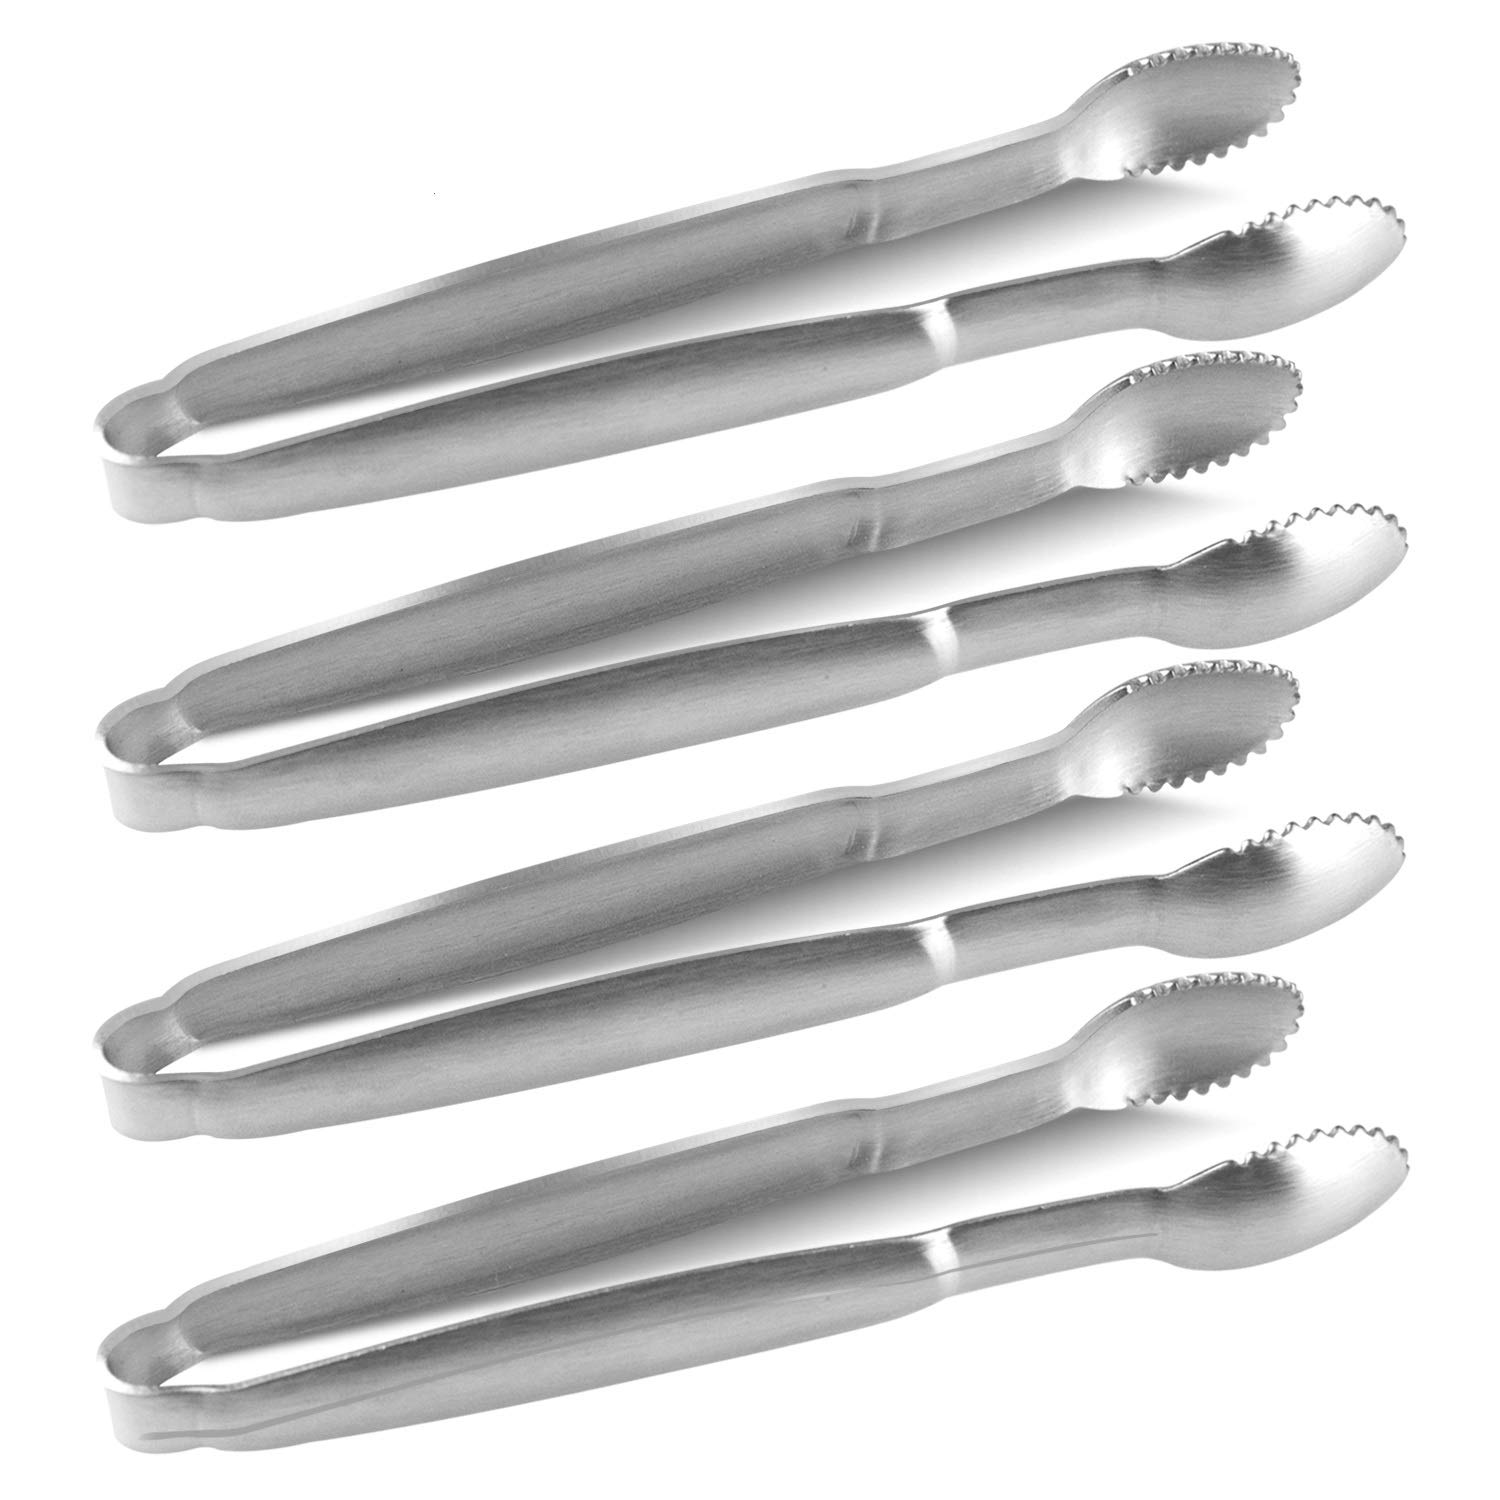 LINPOZONE Sugar Tongs for Tea Party (4 Pack), Sugar Cube Tongs for Lemon Slices, Dessert, Appetizer at Wedding, Bridal Shower and Kitchen